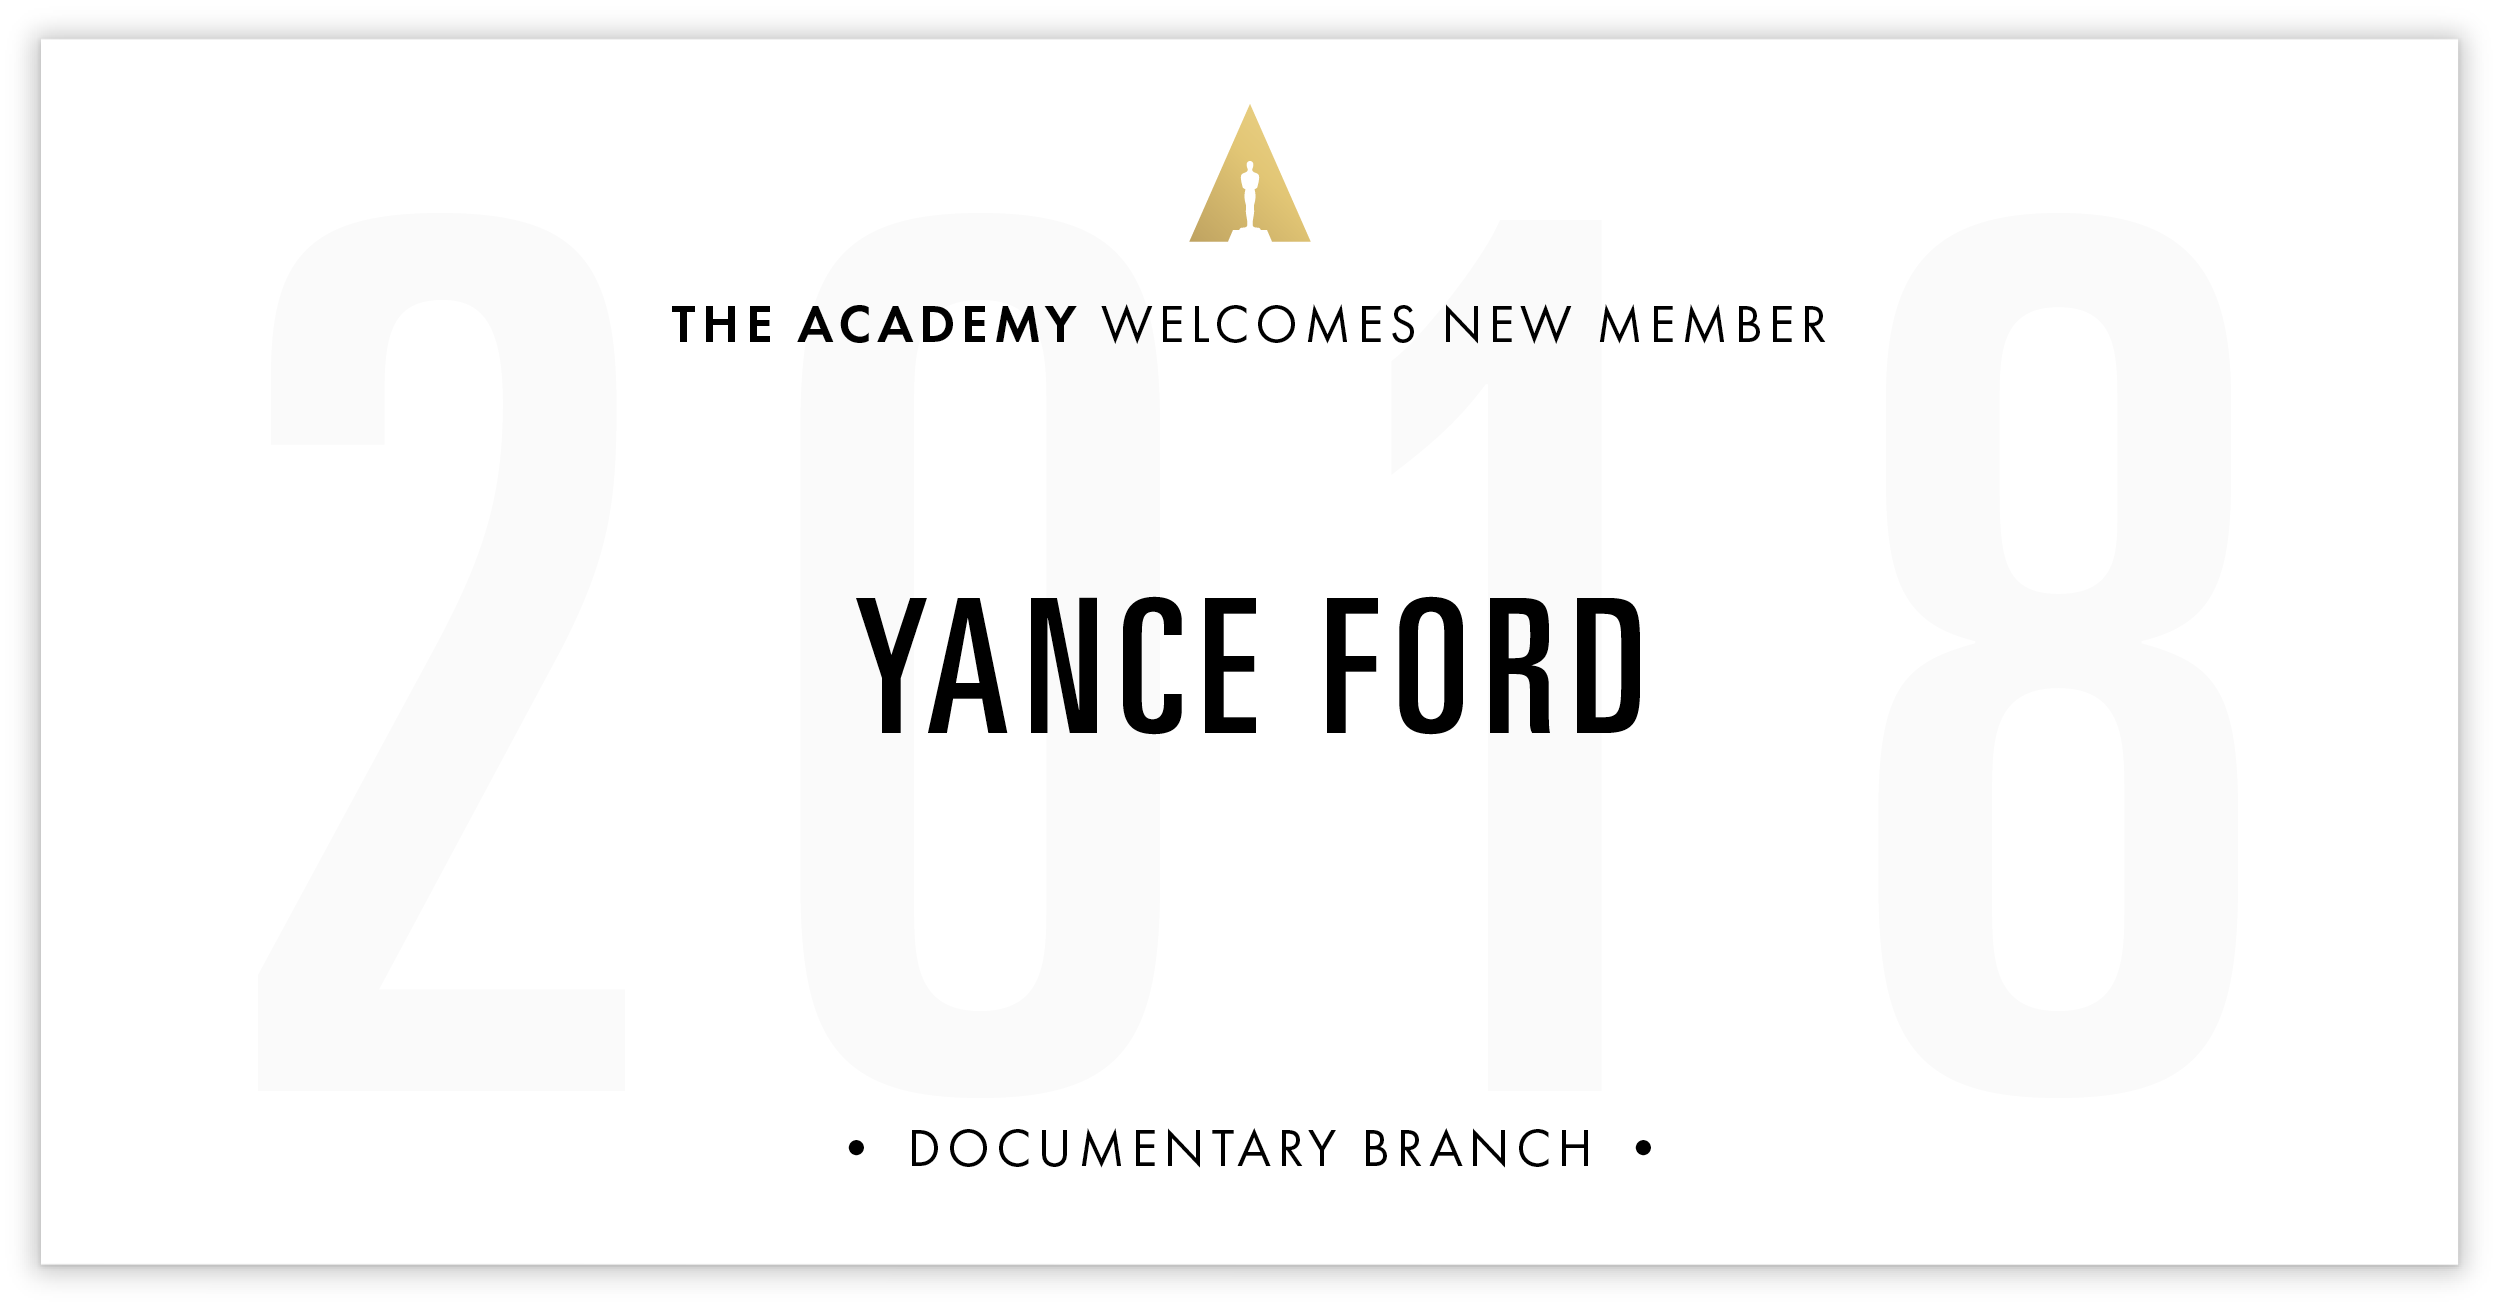 Yance Ford is invited!